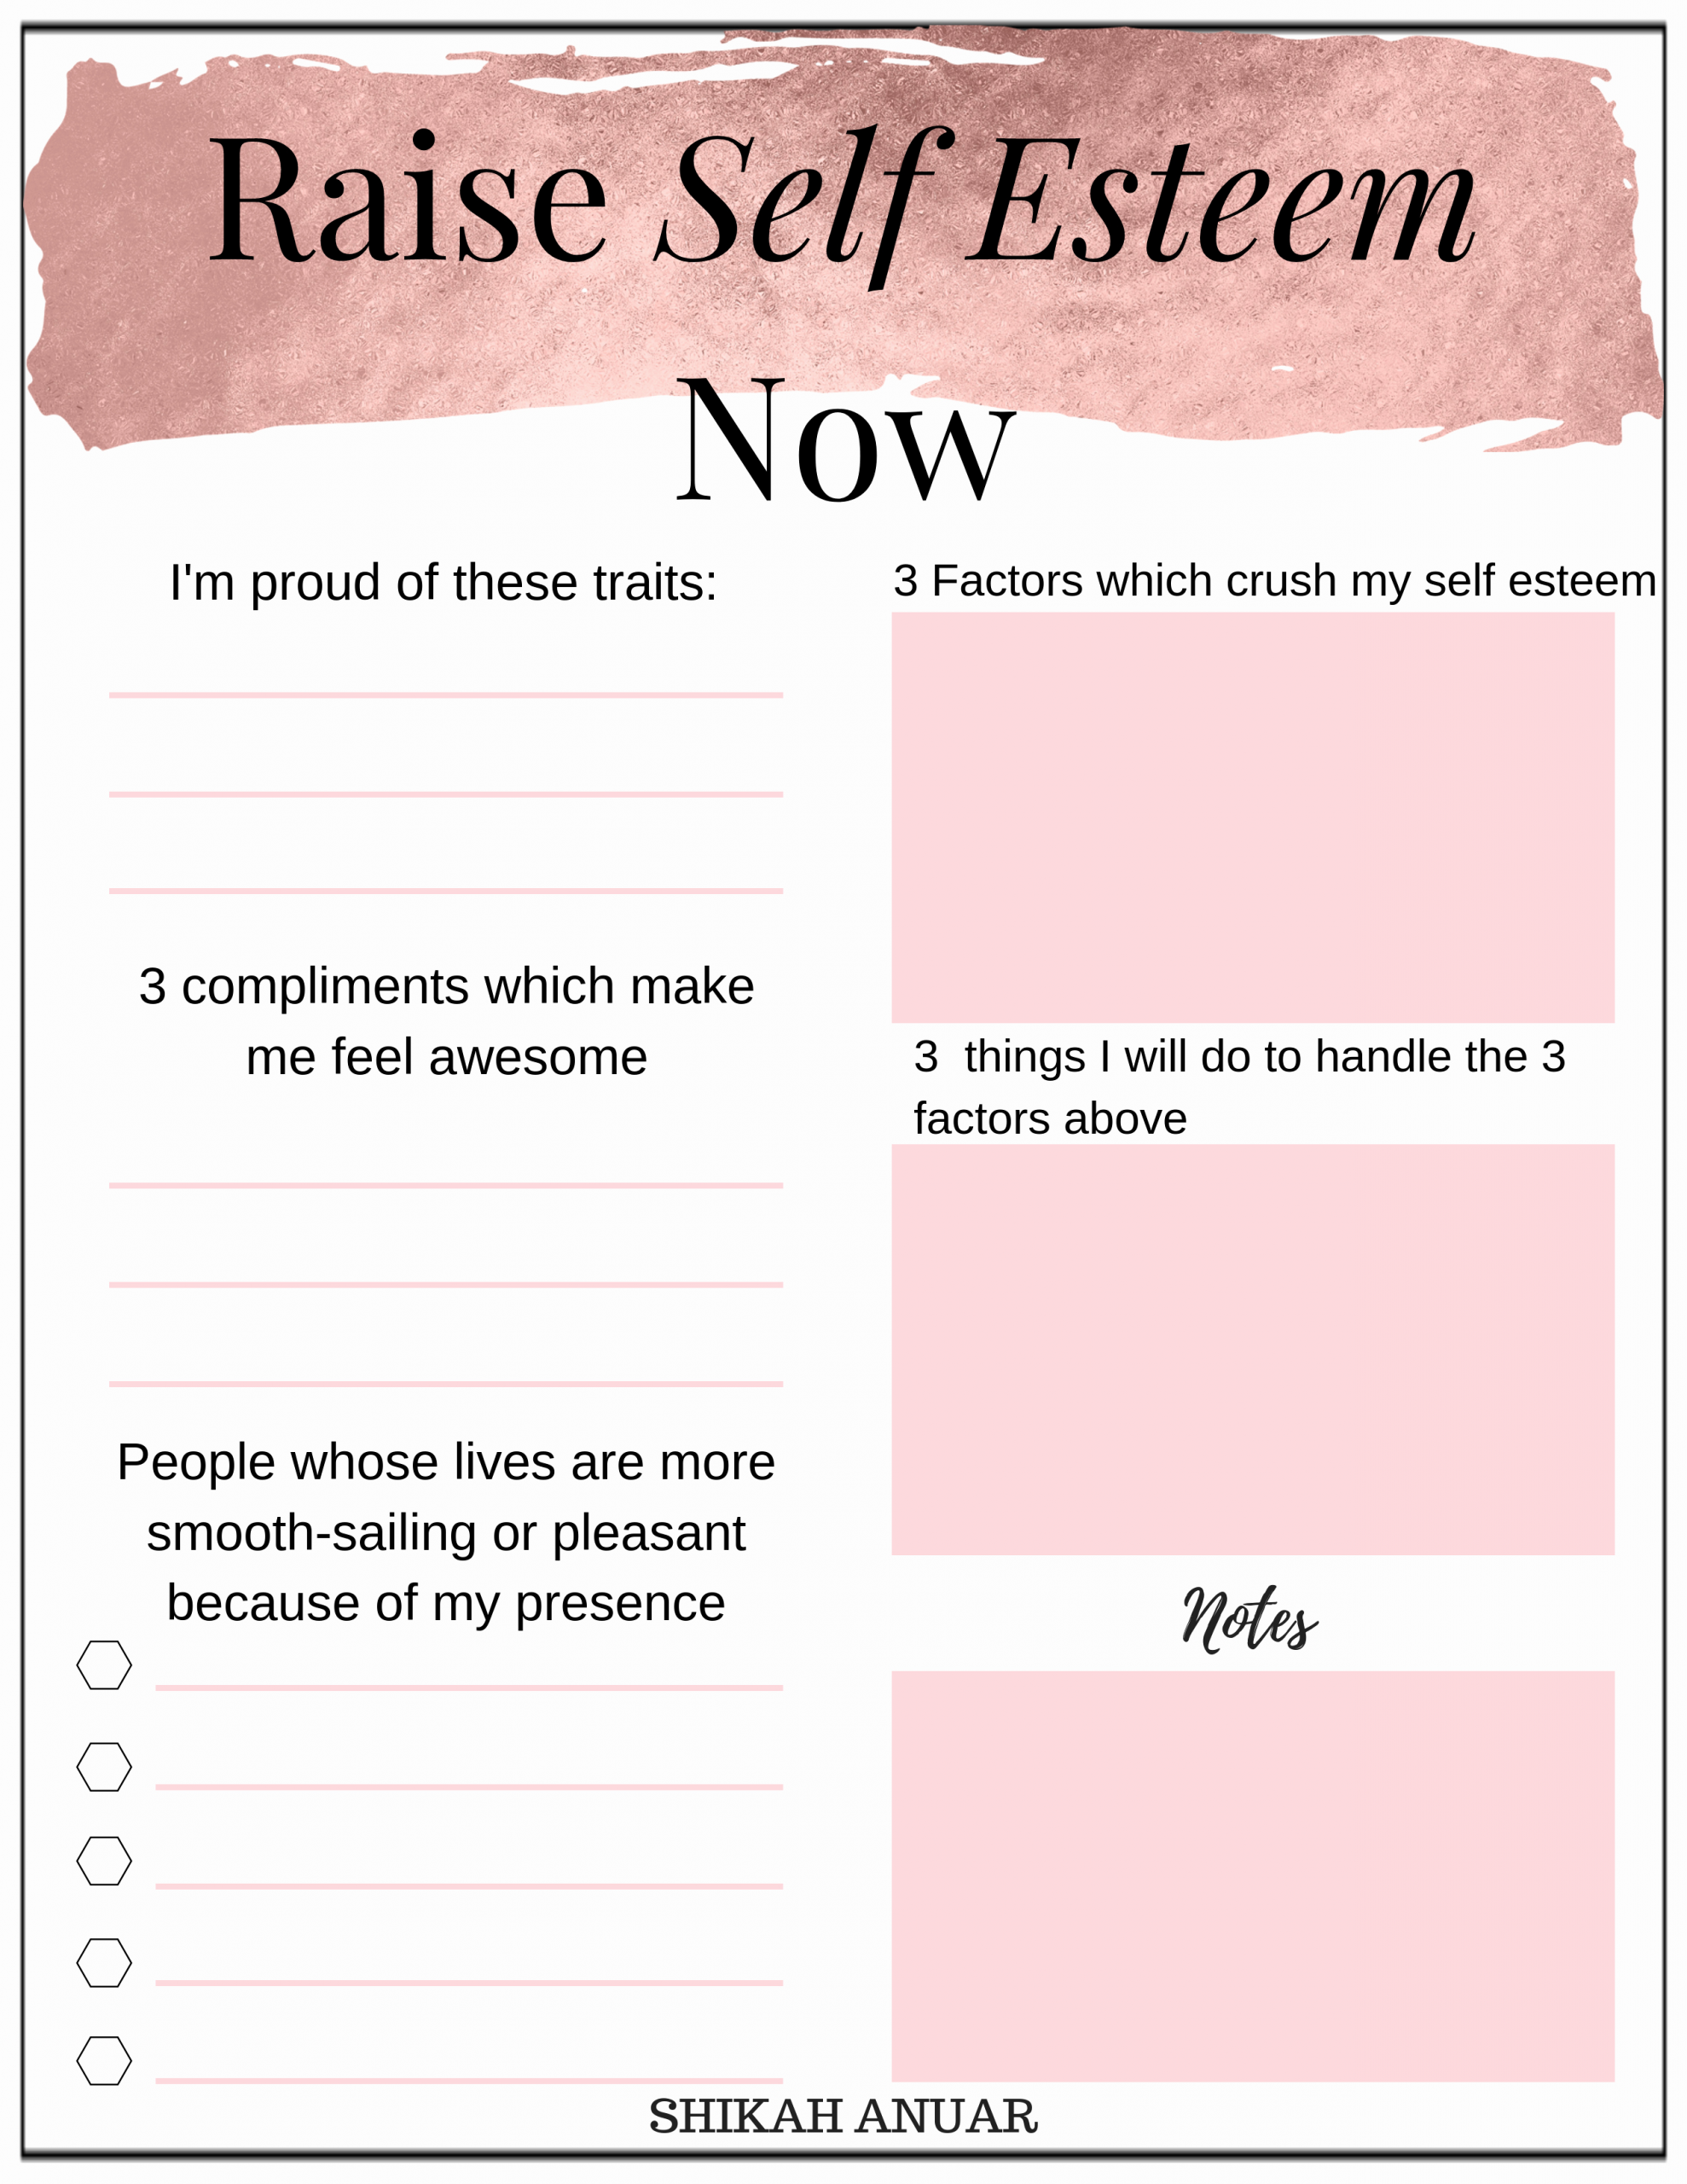 Self Esteem Worksheets for Girls New Free Printable Raise Your Self Esteem now